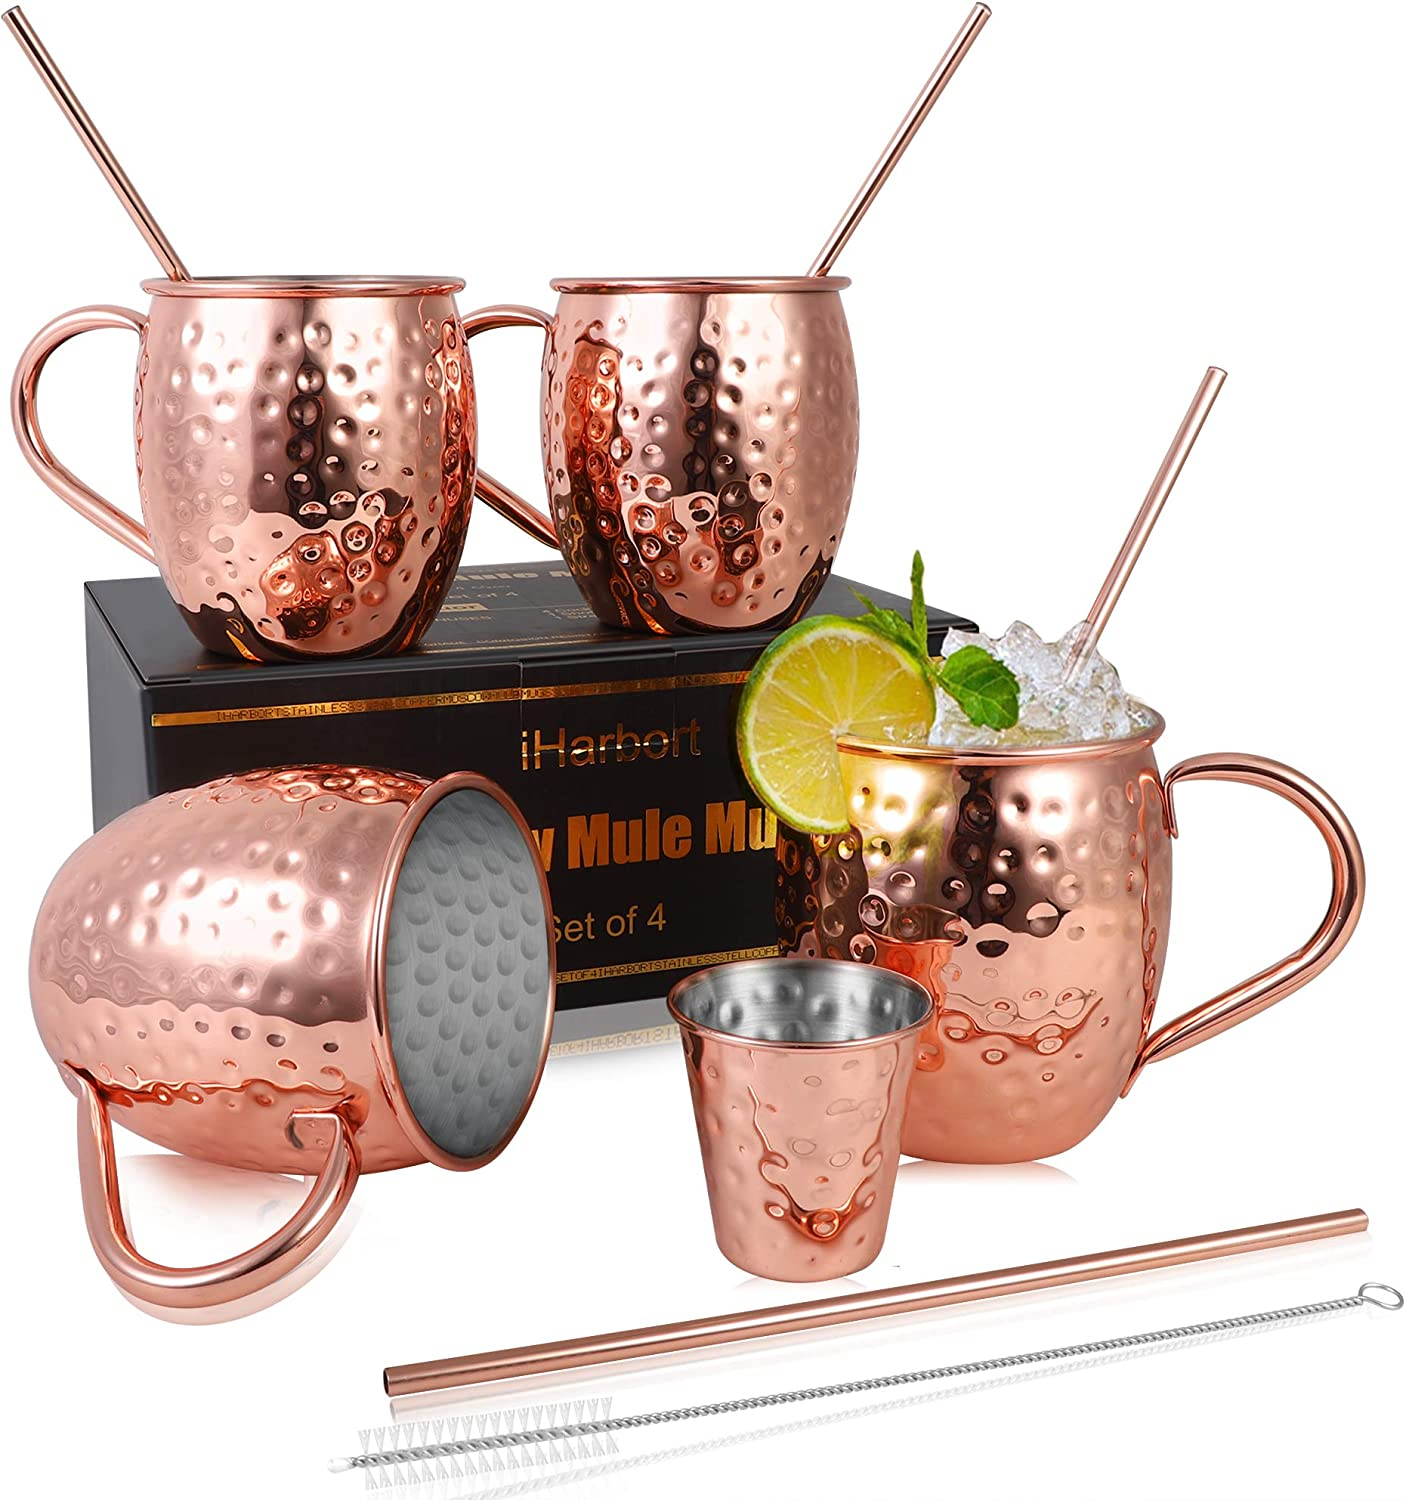 Moscow Mule Mugs / Beer Glasses, Set of 4, 16 oz, HandCrafted Food Safe Pure Solid Beer Mugs Wine Tumbler Cups Glasses, Gift Set With Cocktail Copper Straws, Shot Glass, Straw Brush, Rose Gold